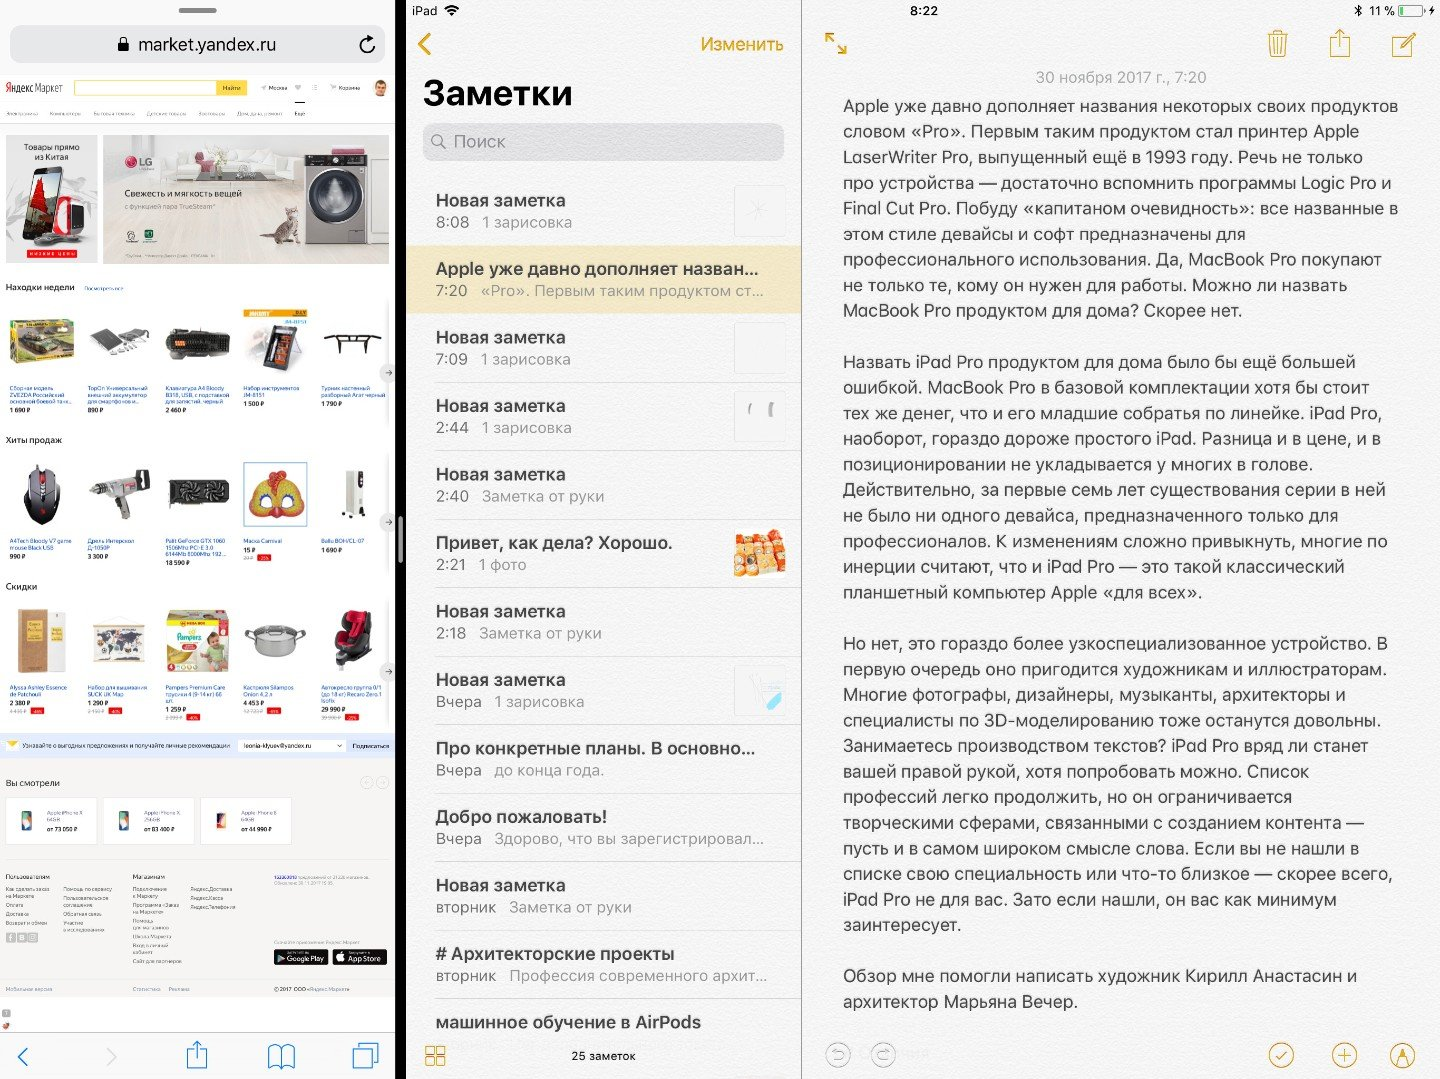 Обзор планшета Apple iPad 12 Pro на Яндекс.Маркете